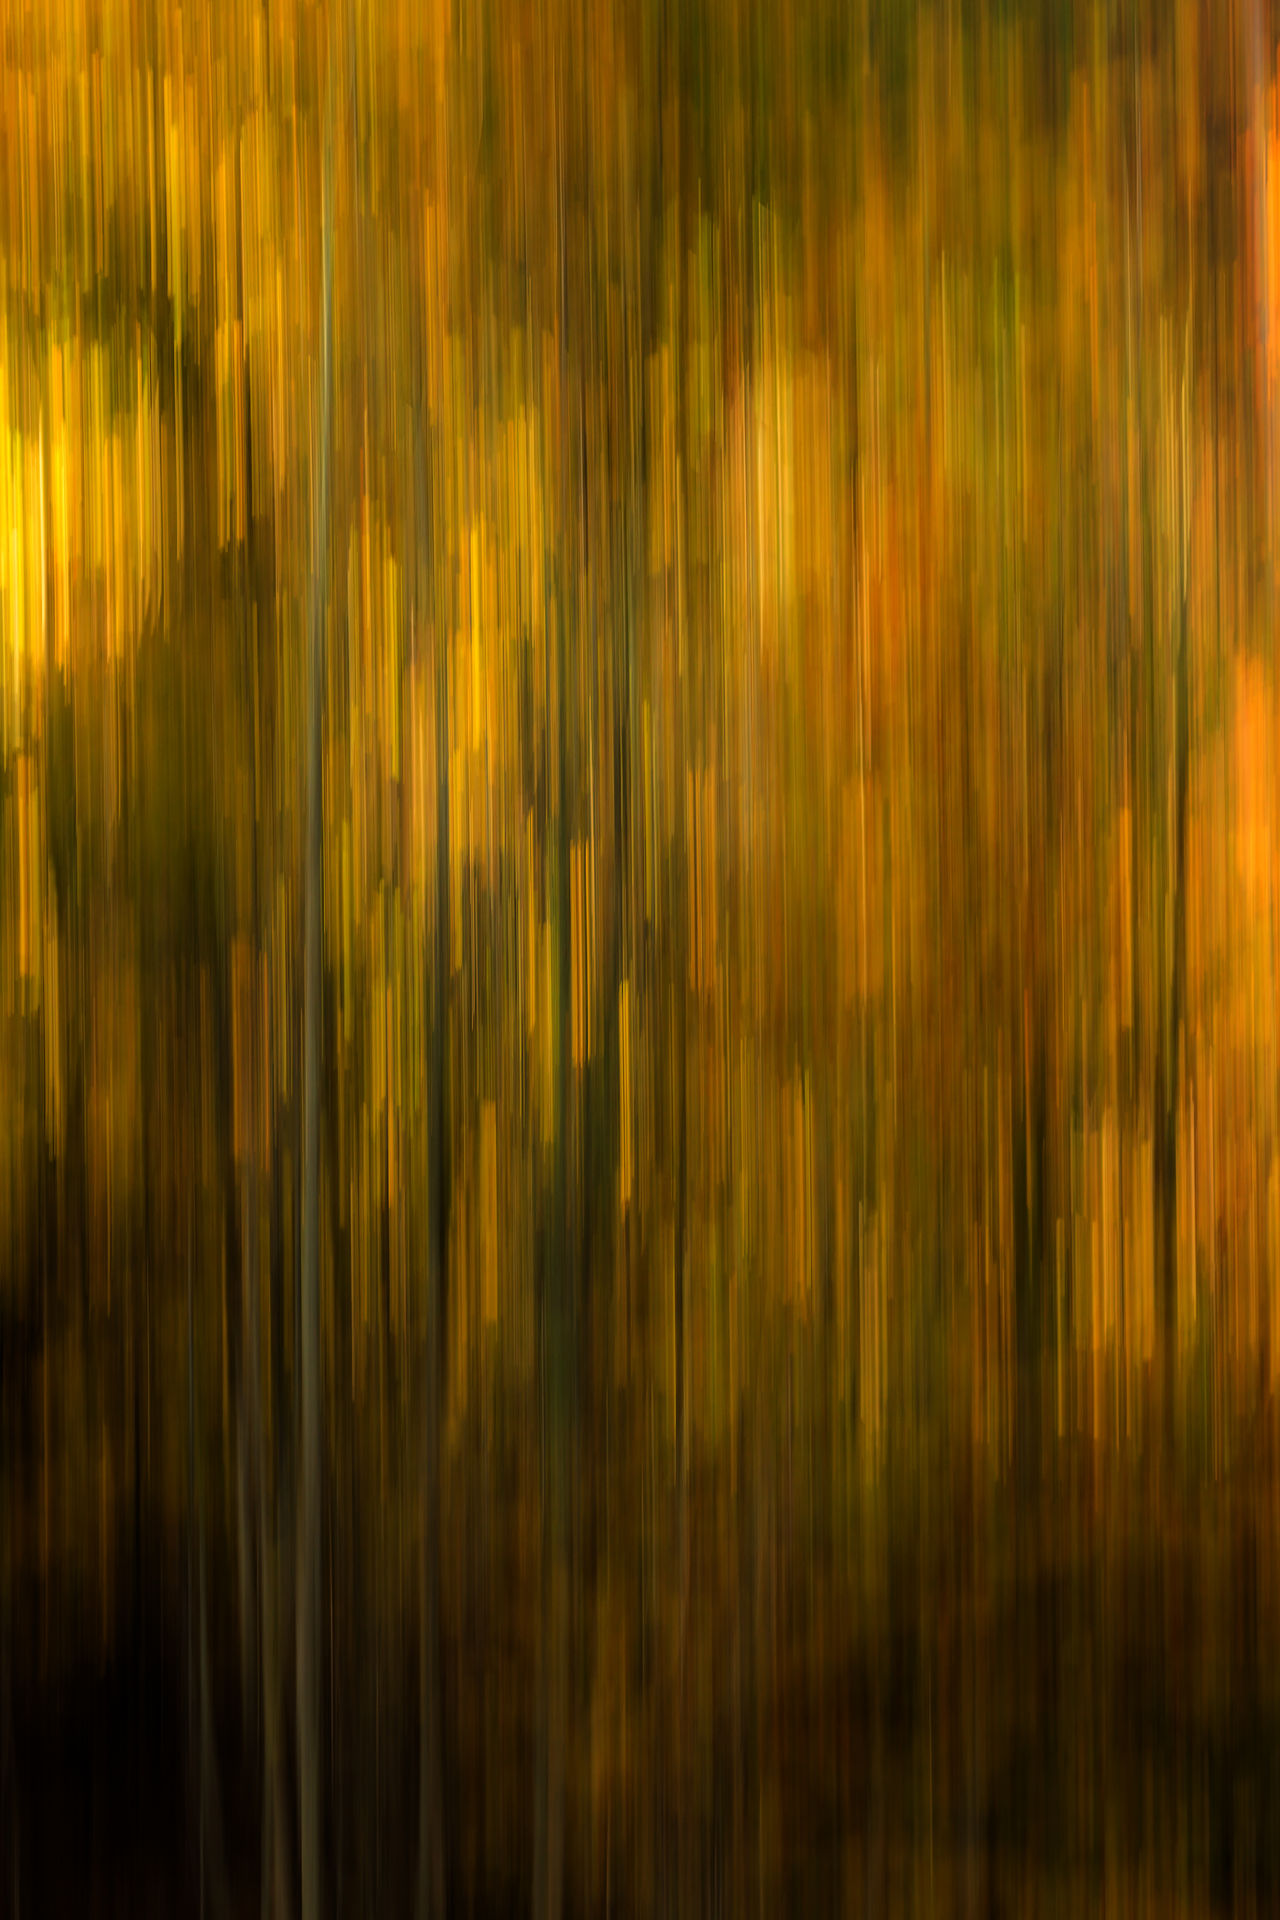 Abstract Abstract Backgrounds Backgrounds Brown Gold Gold Colored Motion No People Orange Color Pattern Shiny Smooth Textured  Textured Background Yellow Yellow Flower